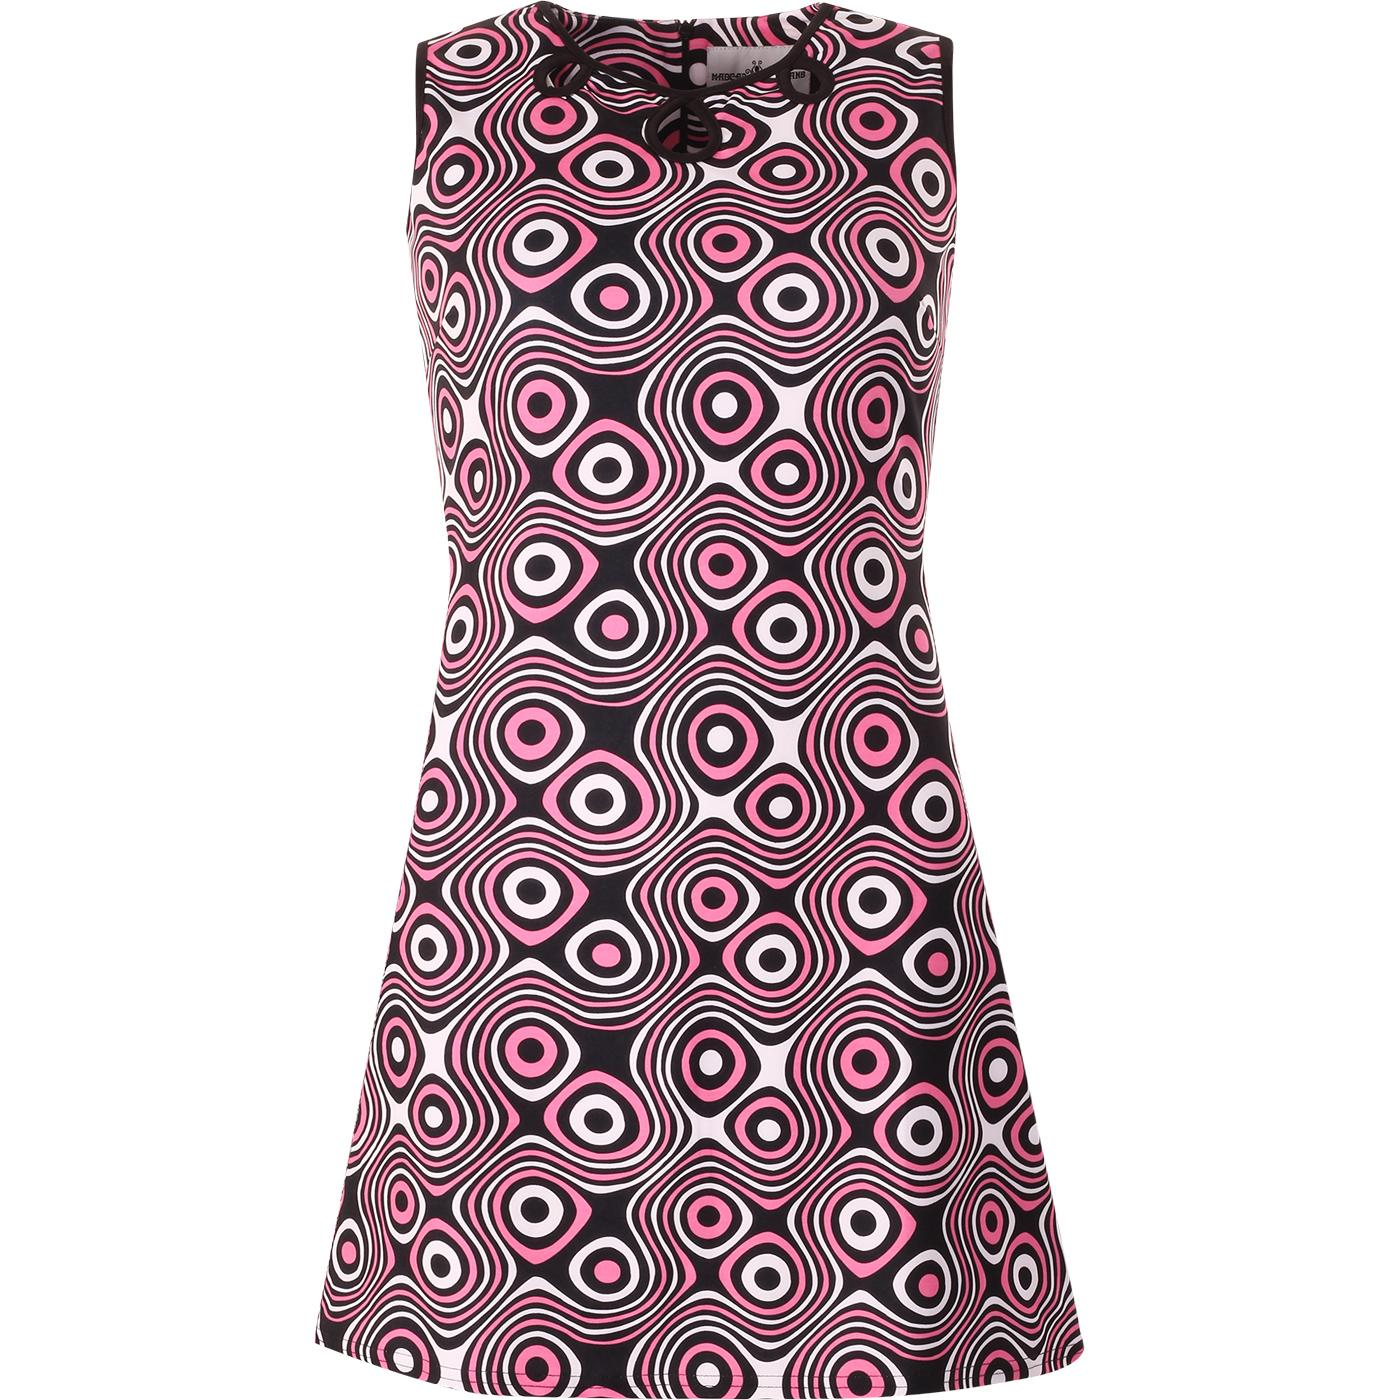 madcap england womens lazy daisy op art print collar mod dress black hot pink